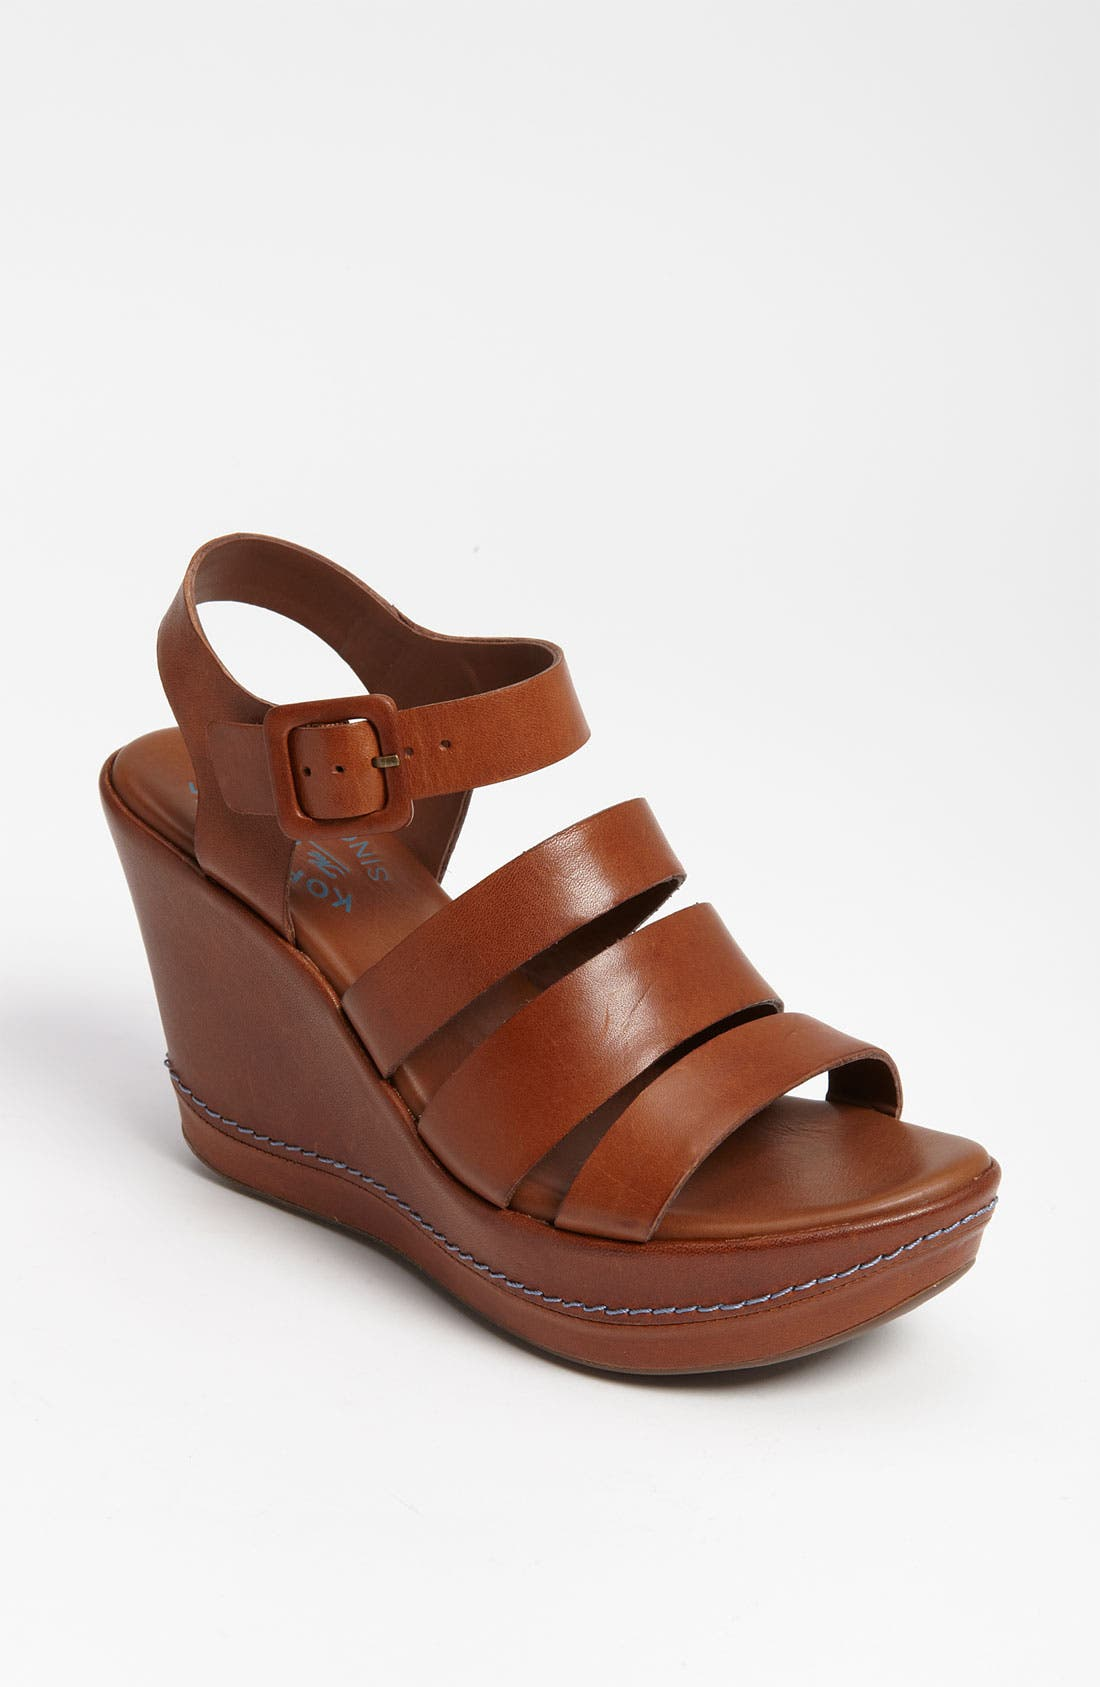 Alternate Image 1 Selected - Kork-Ease 'Emily' Sandal